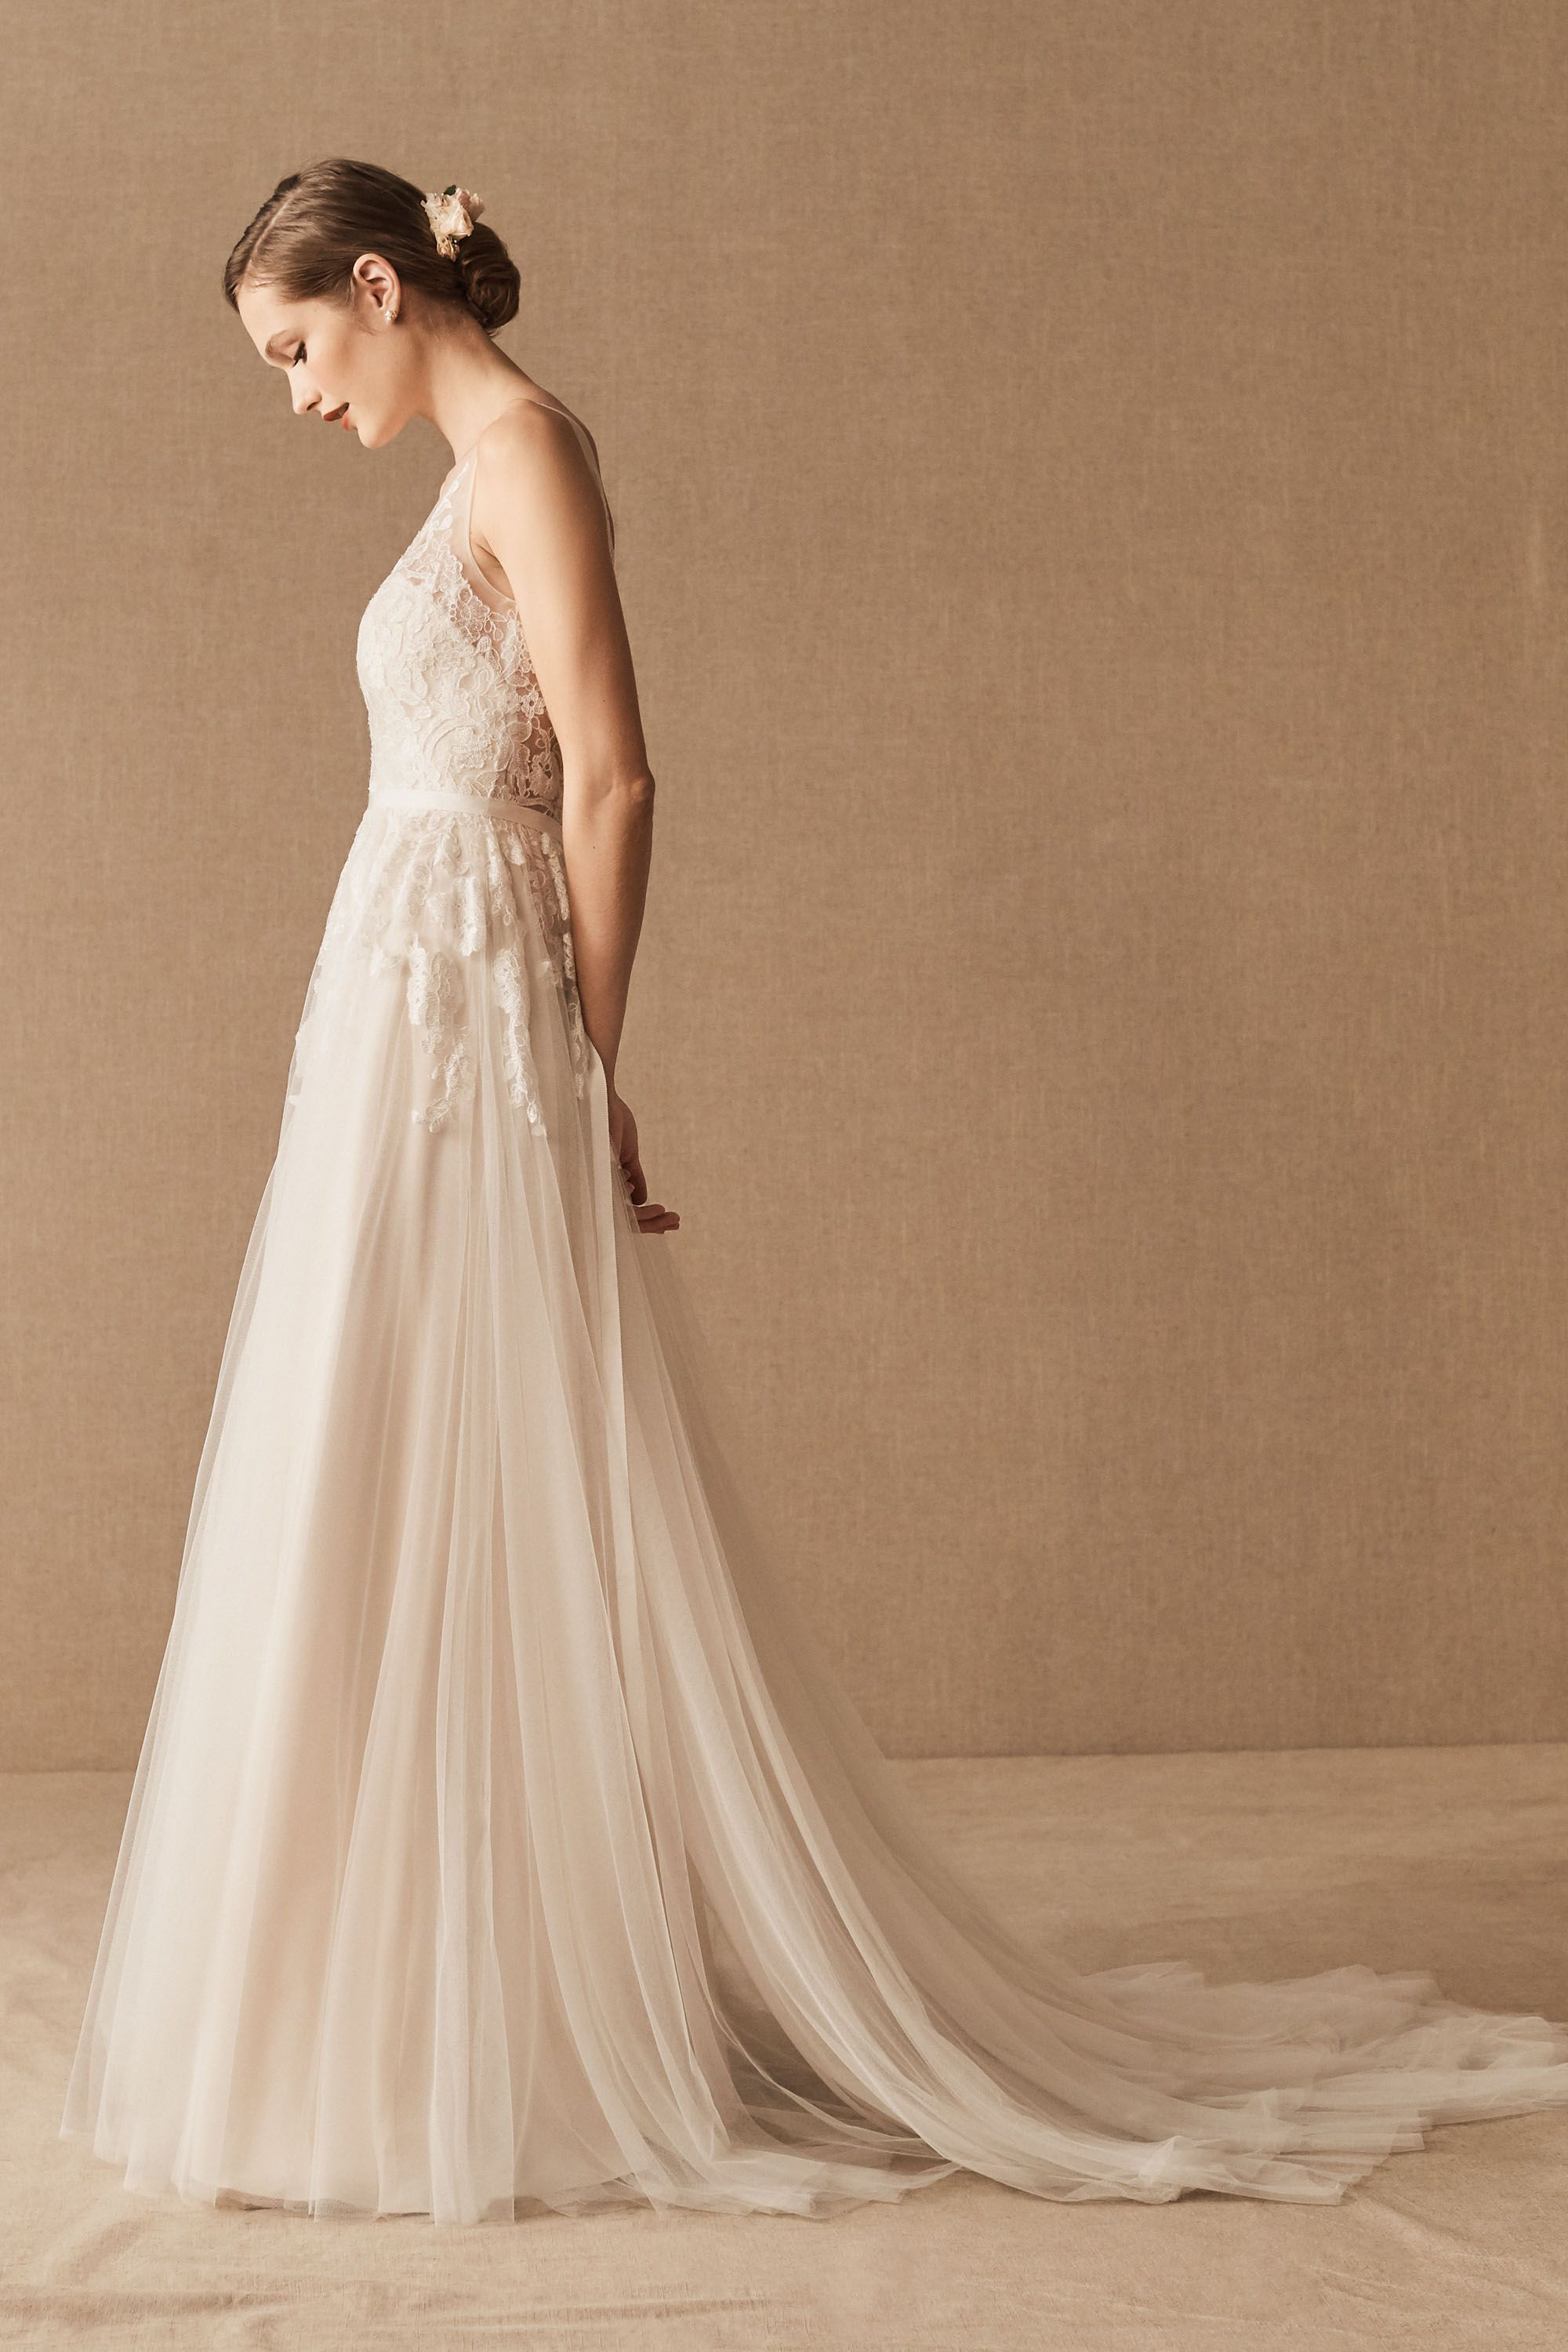 Wedding Wedding Dresses Pictures wedding dresses vintage simple gowns bhldn reagan gown gown